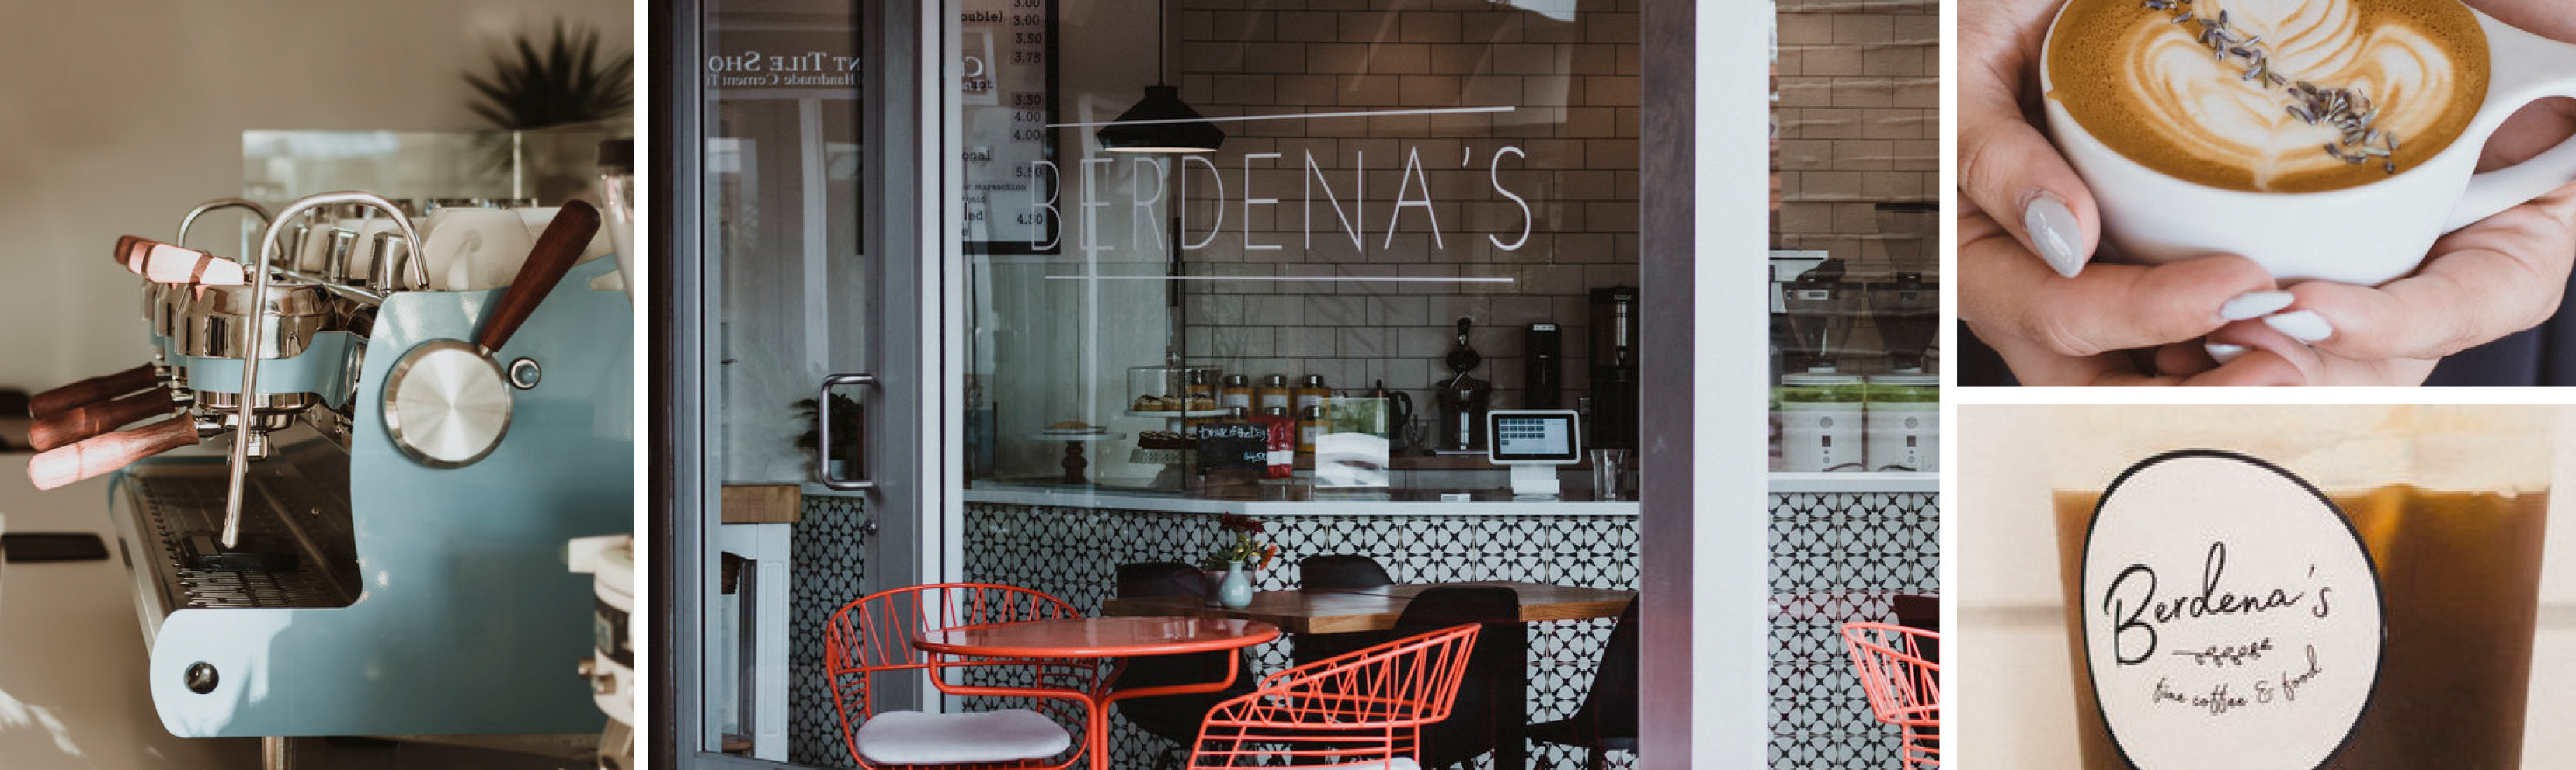 Berdena's is one of the best!